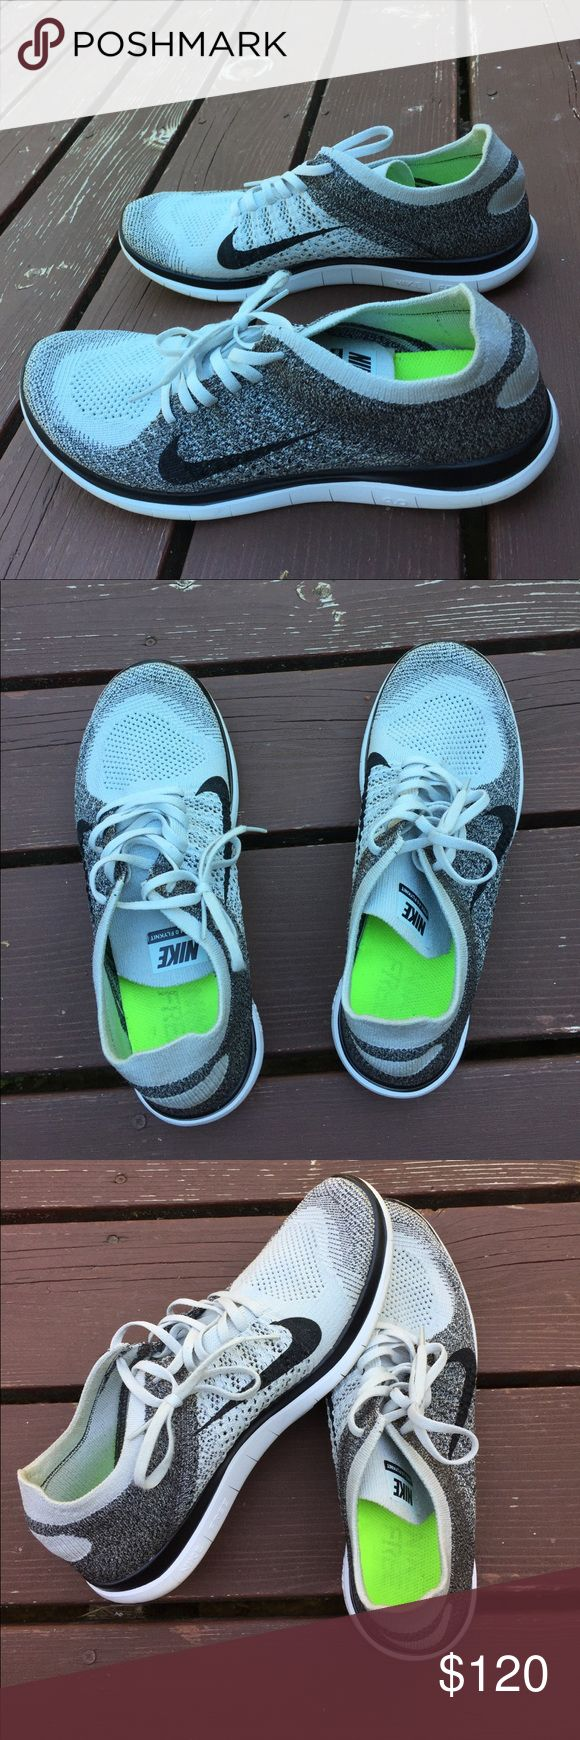 Nike Flyknits 4.0 Oreo No flaws and gently worn! Hard to find in such good condition. Nike Shoes Athletic Shoes